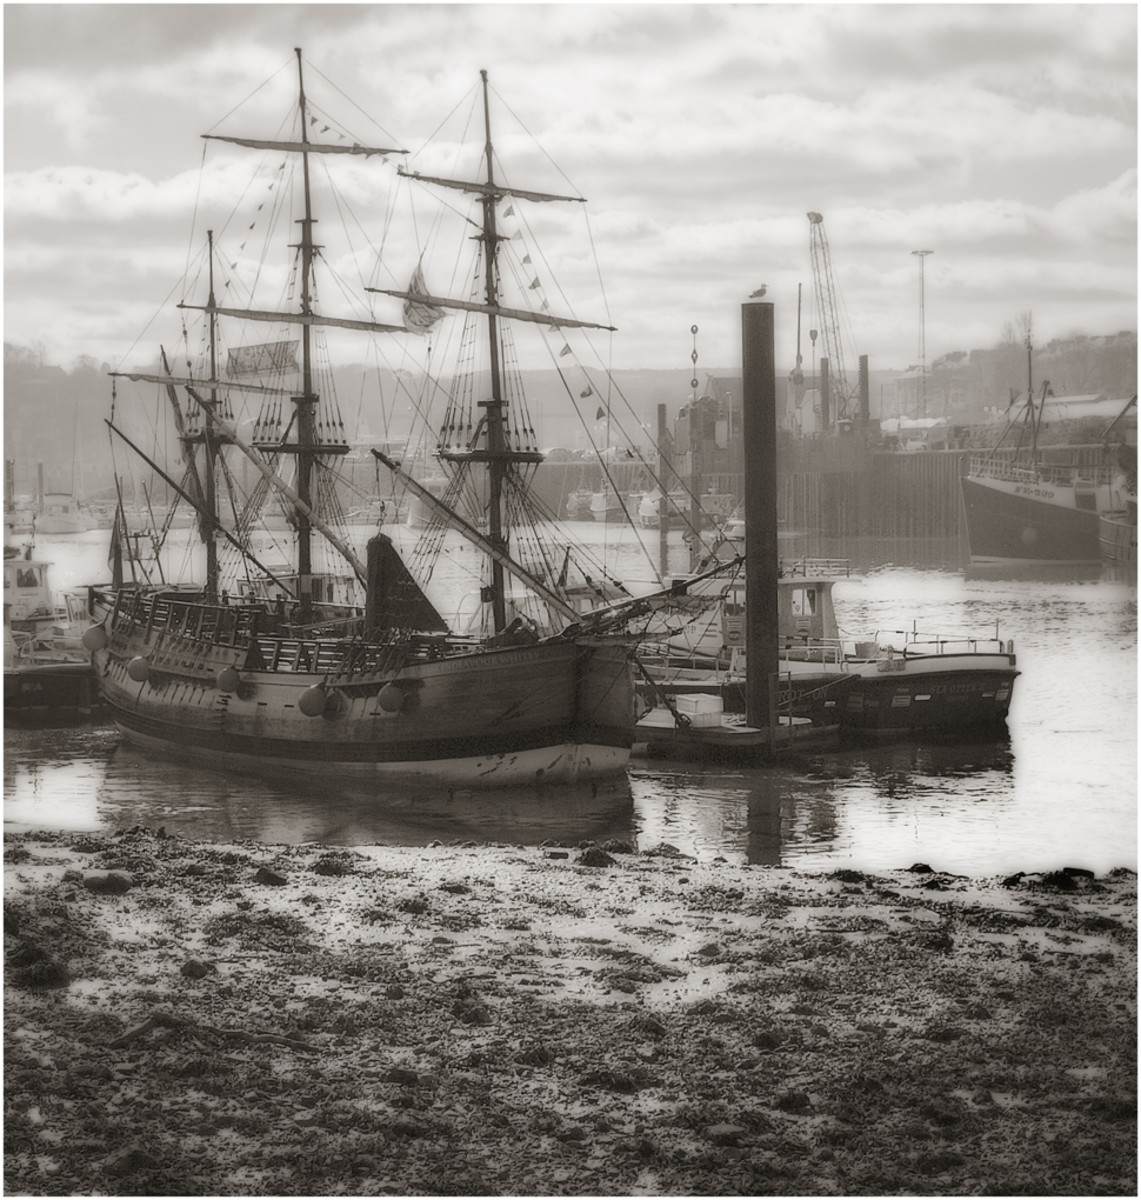 Whitby Harbour in the 20th Century with another 'Cat'. Steam was overtaken by diesel,  Yet the 'romance' of sail lingers. Cook rounded the 'Horn' more than once when circumnavigating the globe